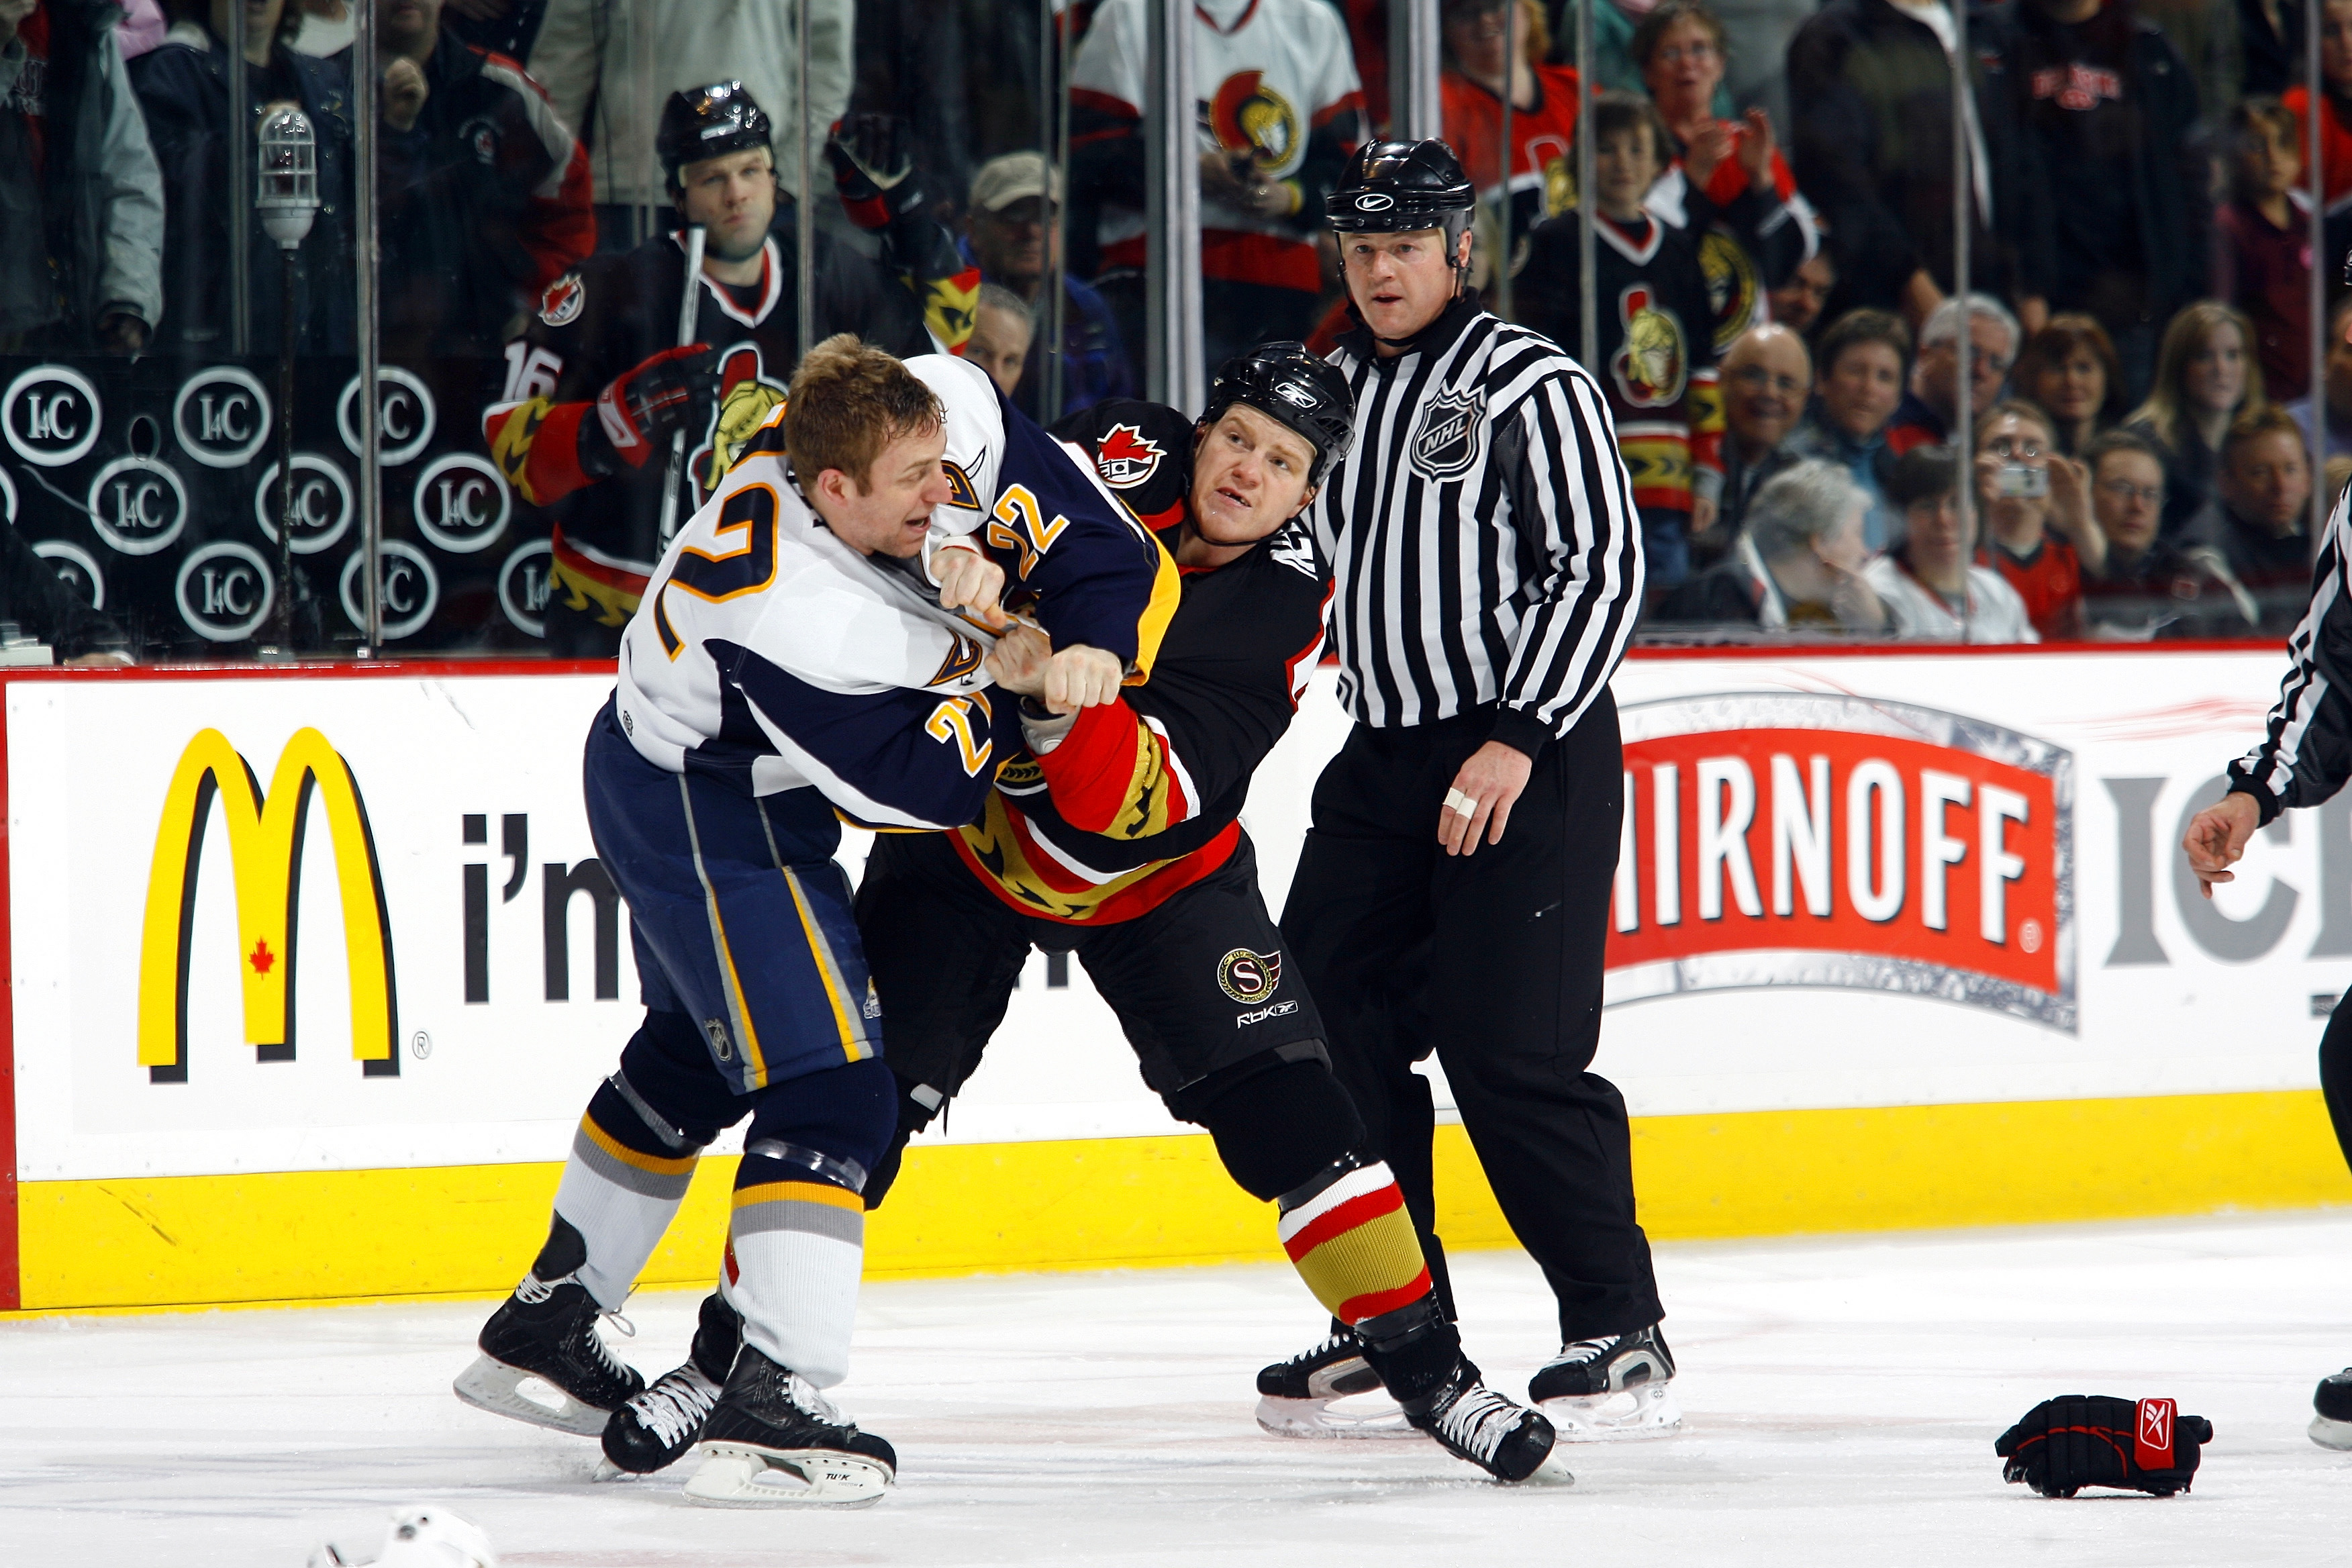 Chris Neil has been battling the Sabres for 15 seasons, including this 2007 fight with Adam Mair. (Getty Images)